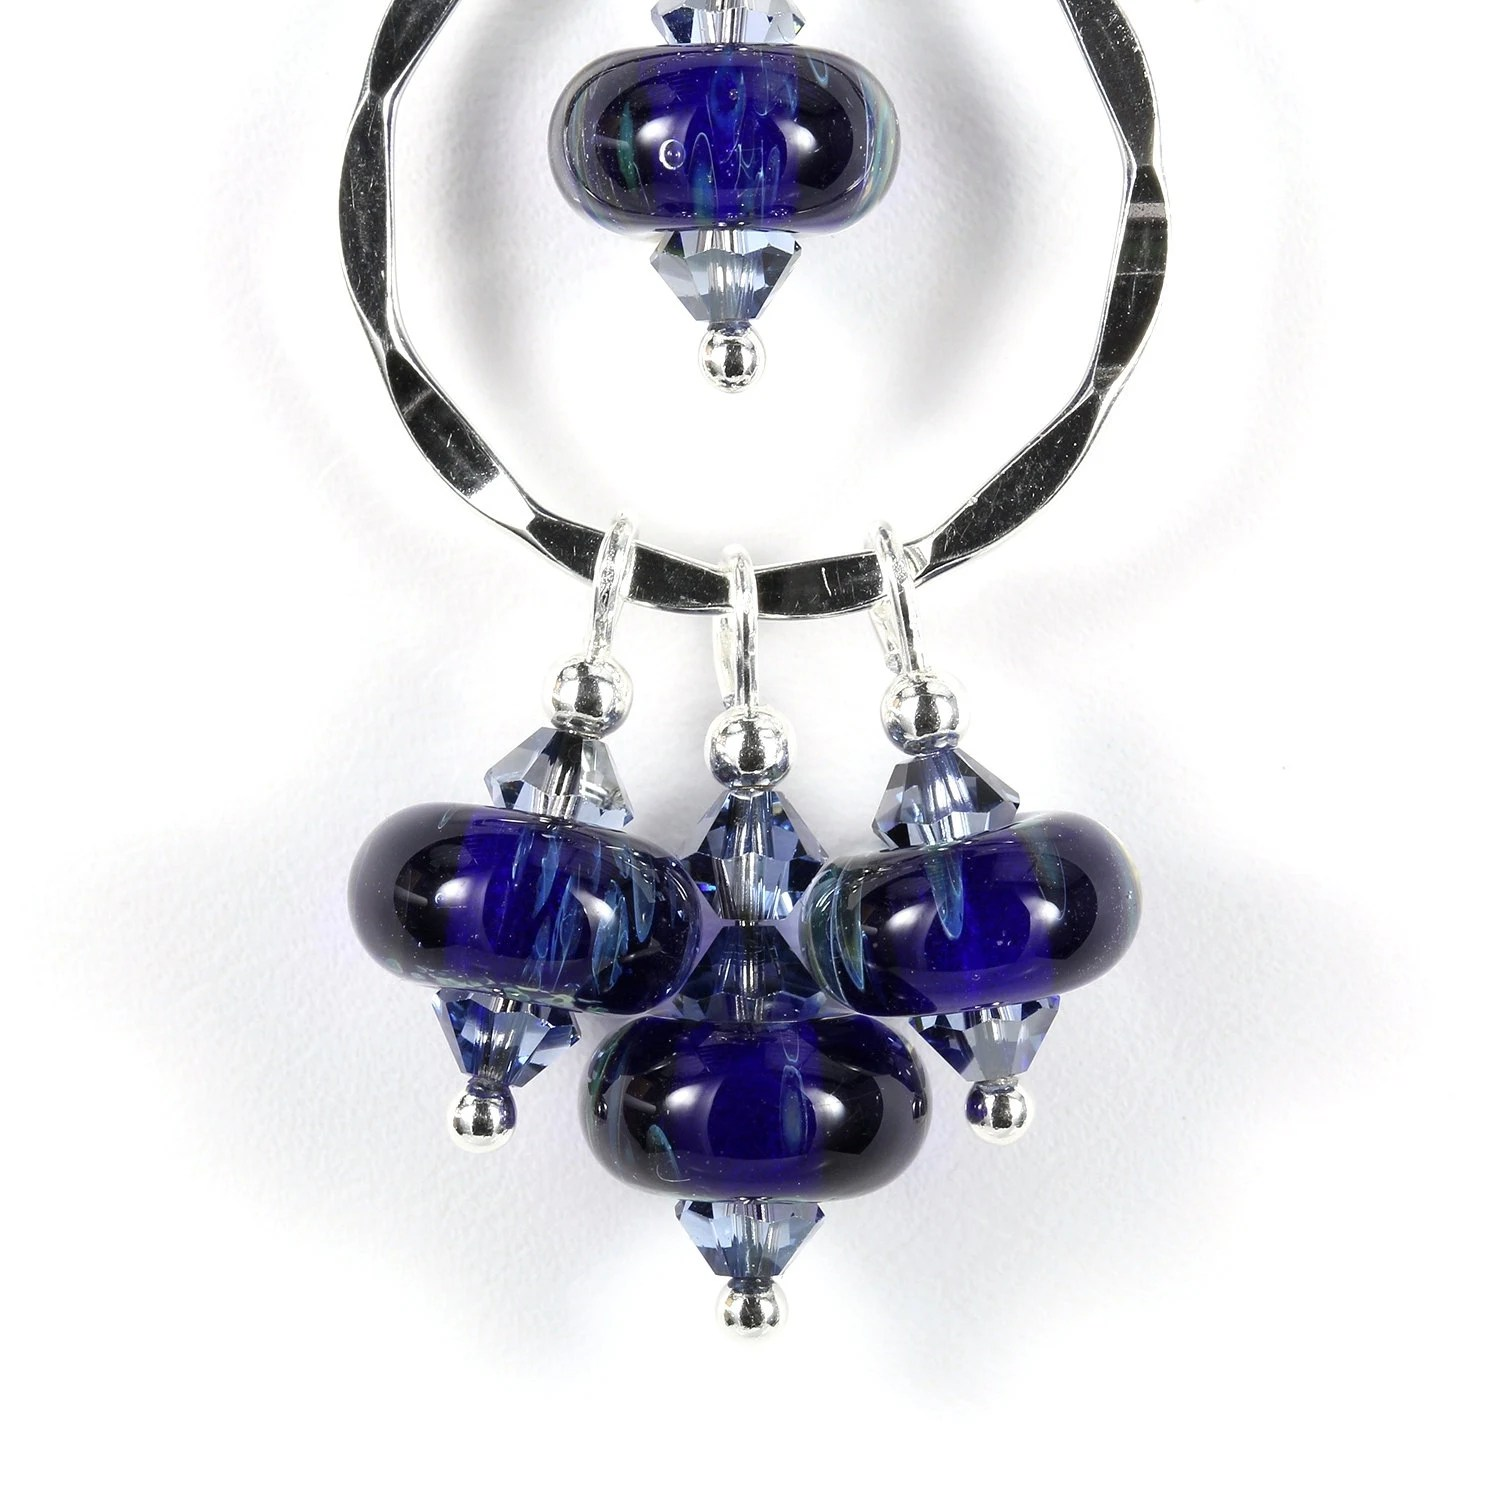 Lampwork glass chandelier necklace